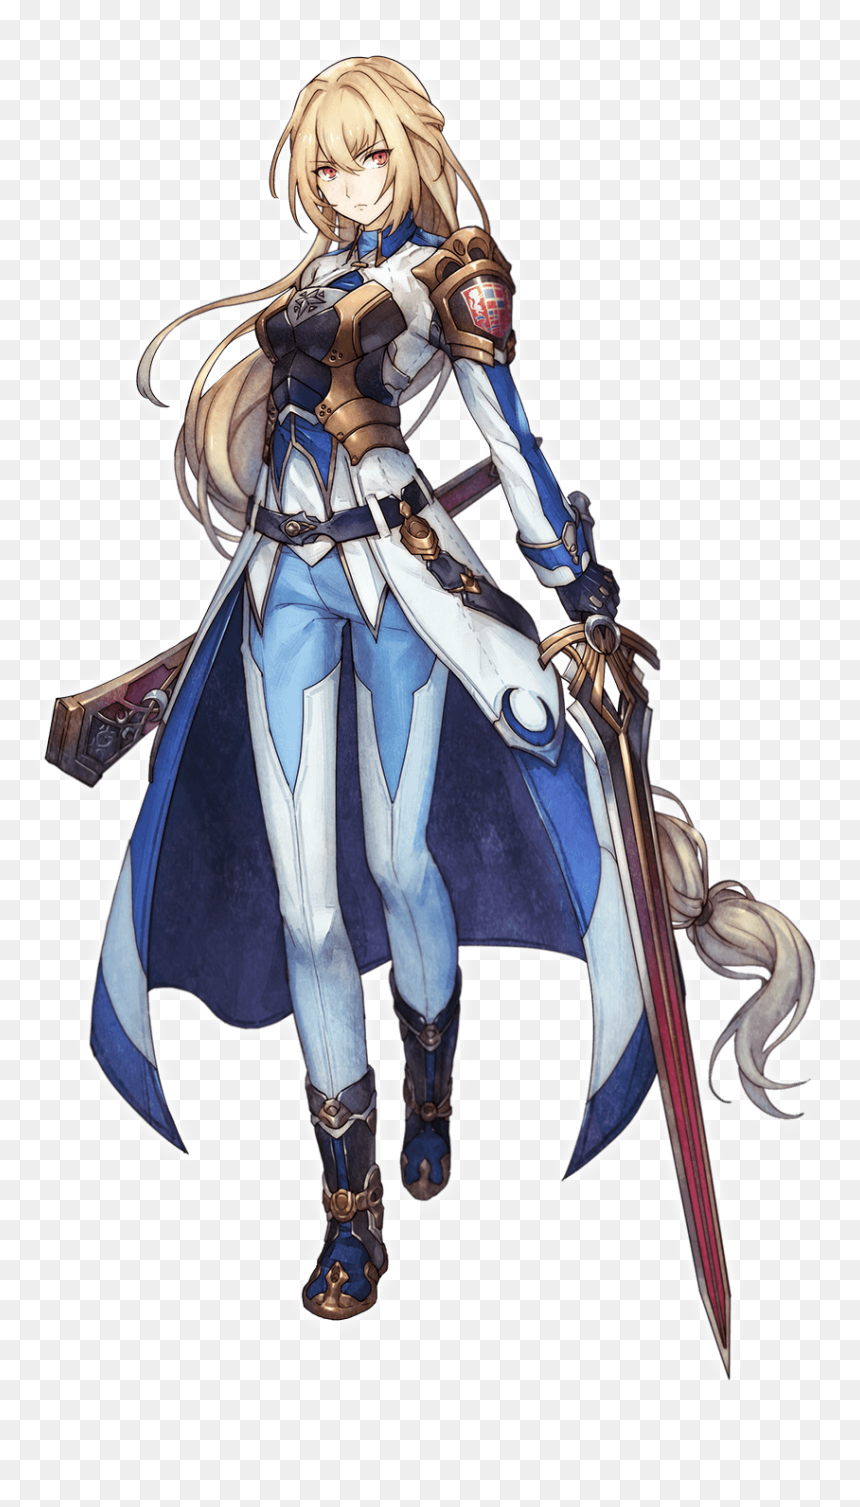 Pin By Sui Ars On Anime - Anime Girl Warrior Png, Transparent Png